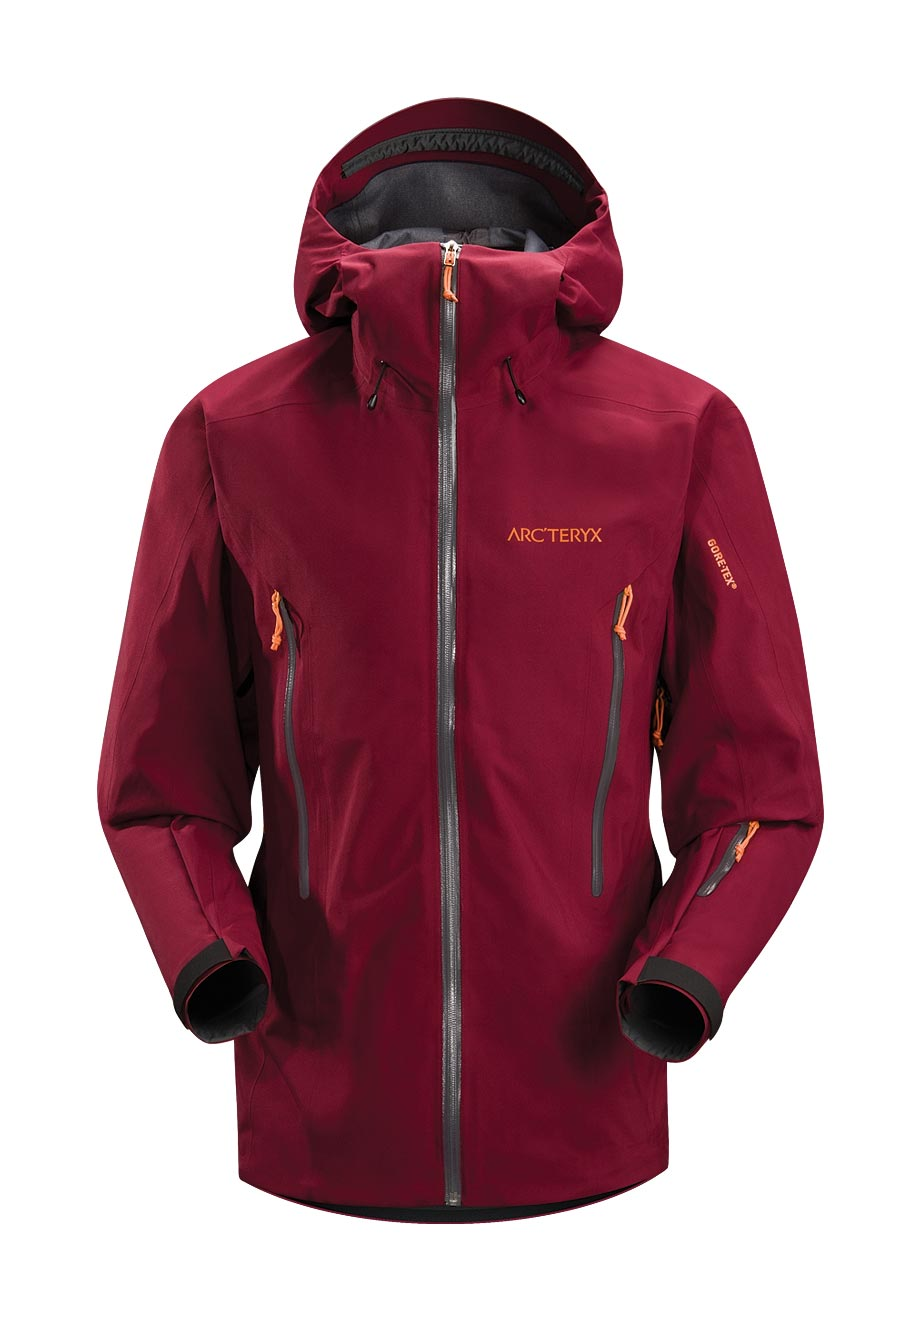 Arcteryx Jackets Men Sultans Palace Crossbow Jacket